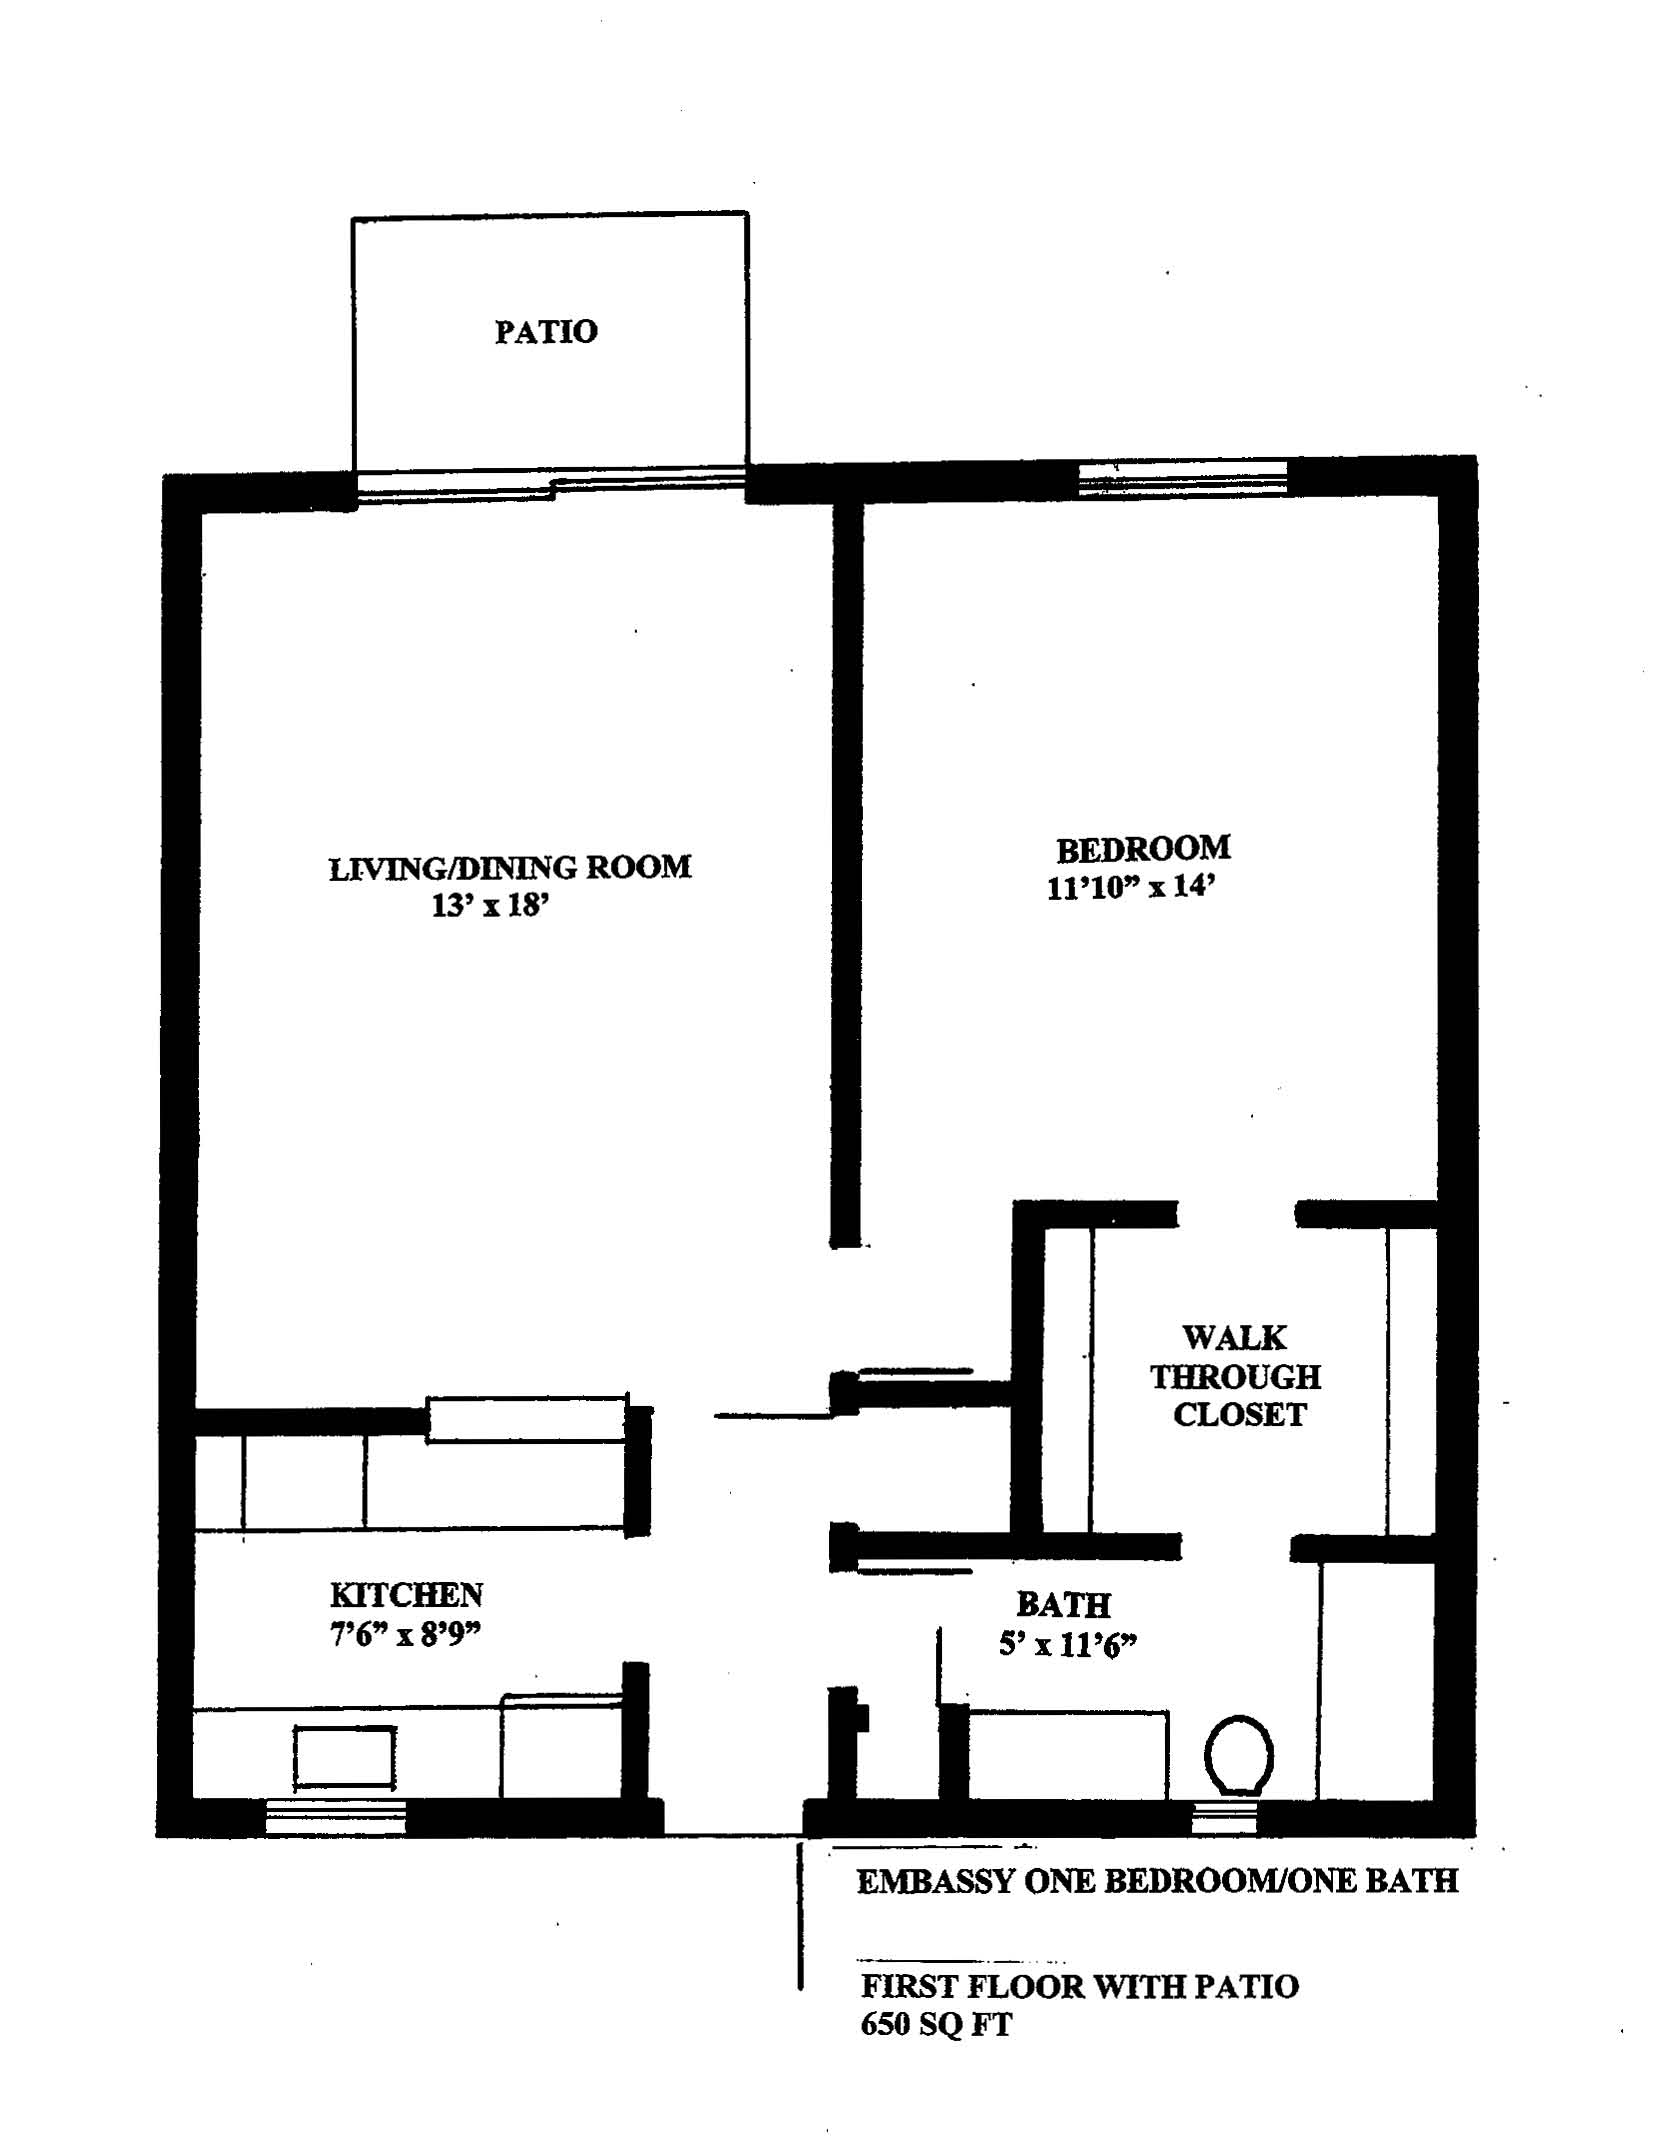 Floorplan - EMBASSY 1A - Available NOW Located at Embassy Apartments image